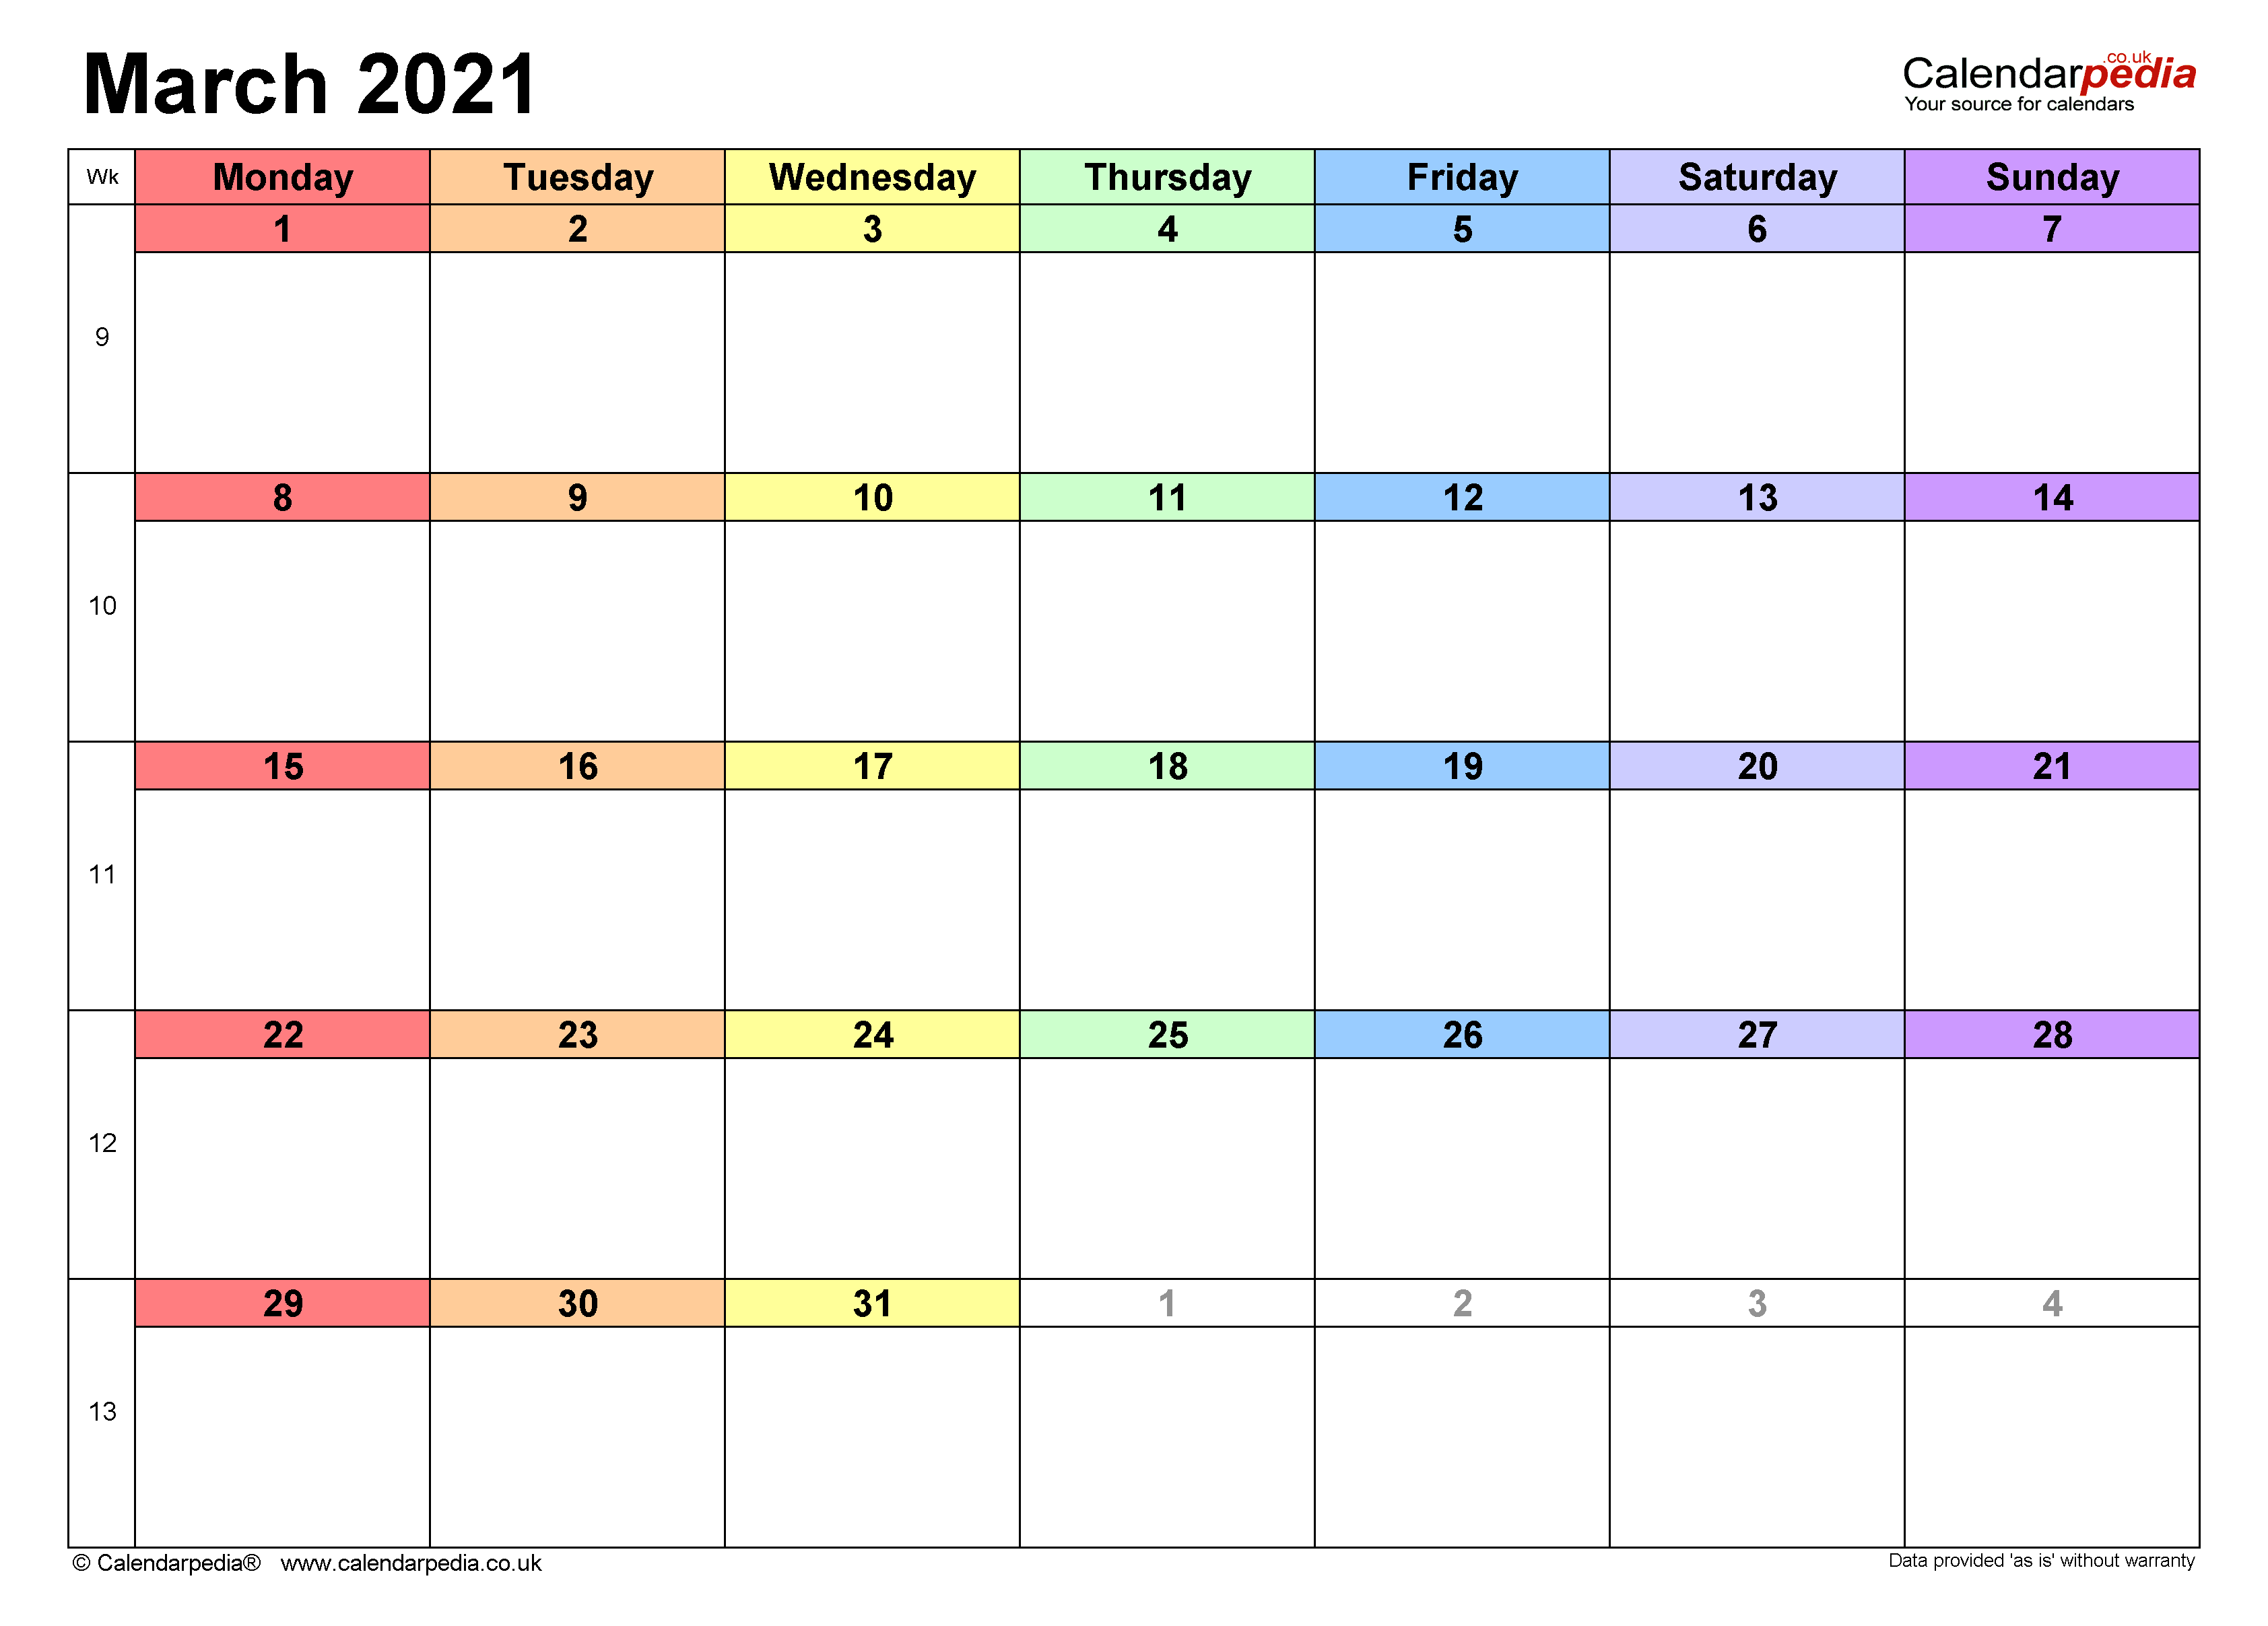 Calendar March 2021 Uk With Excel, Word And Pdf Templates Inside March 2021 Calendar Images